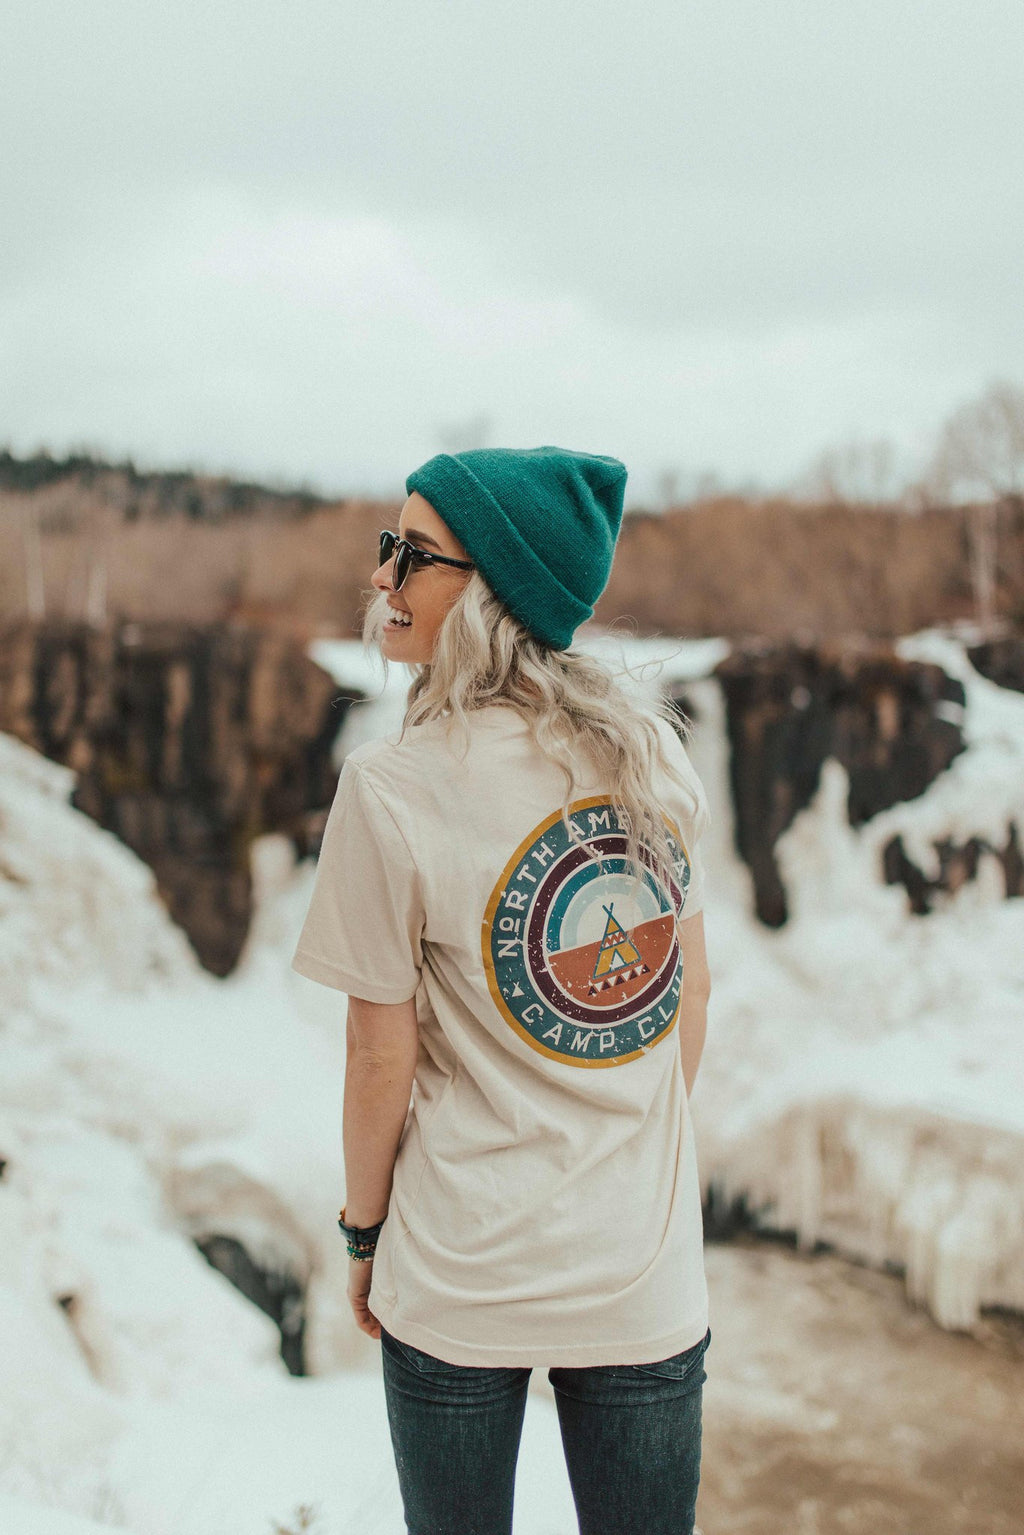 The Parks Camp Club Tee - The Parks Apparel